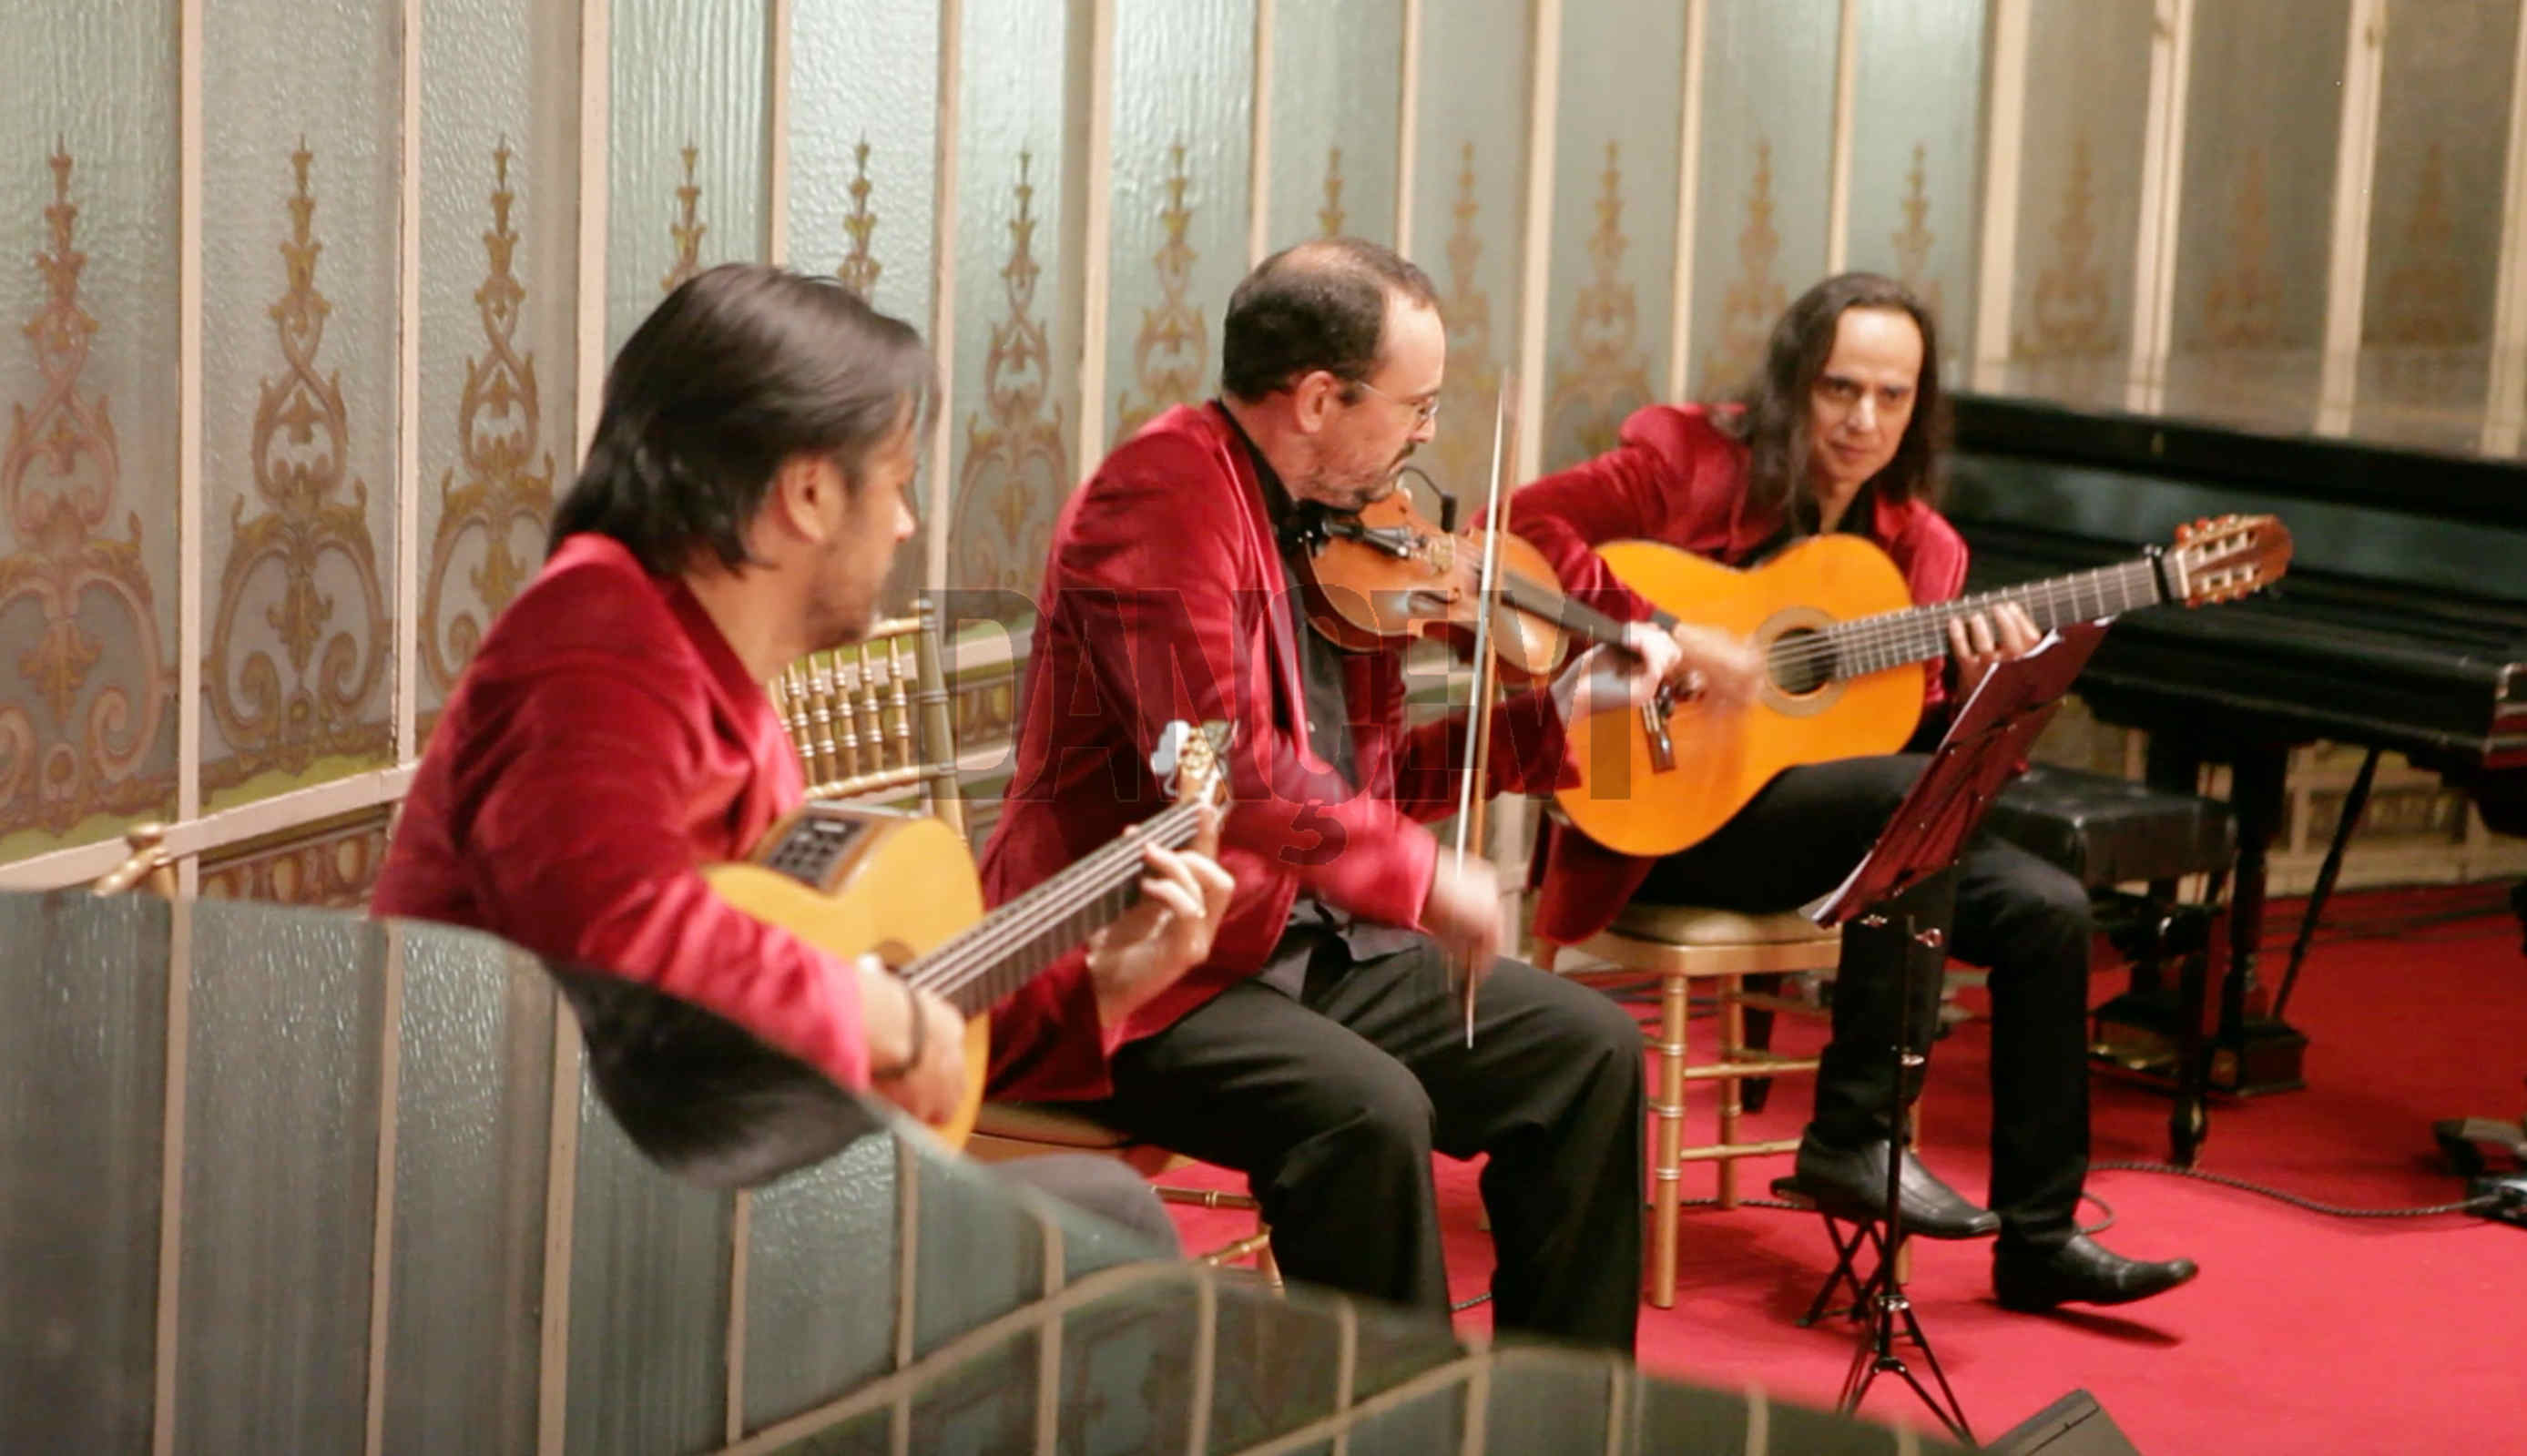 Live music for events and parties - Dancem Events - Flamenco